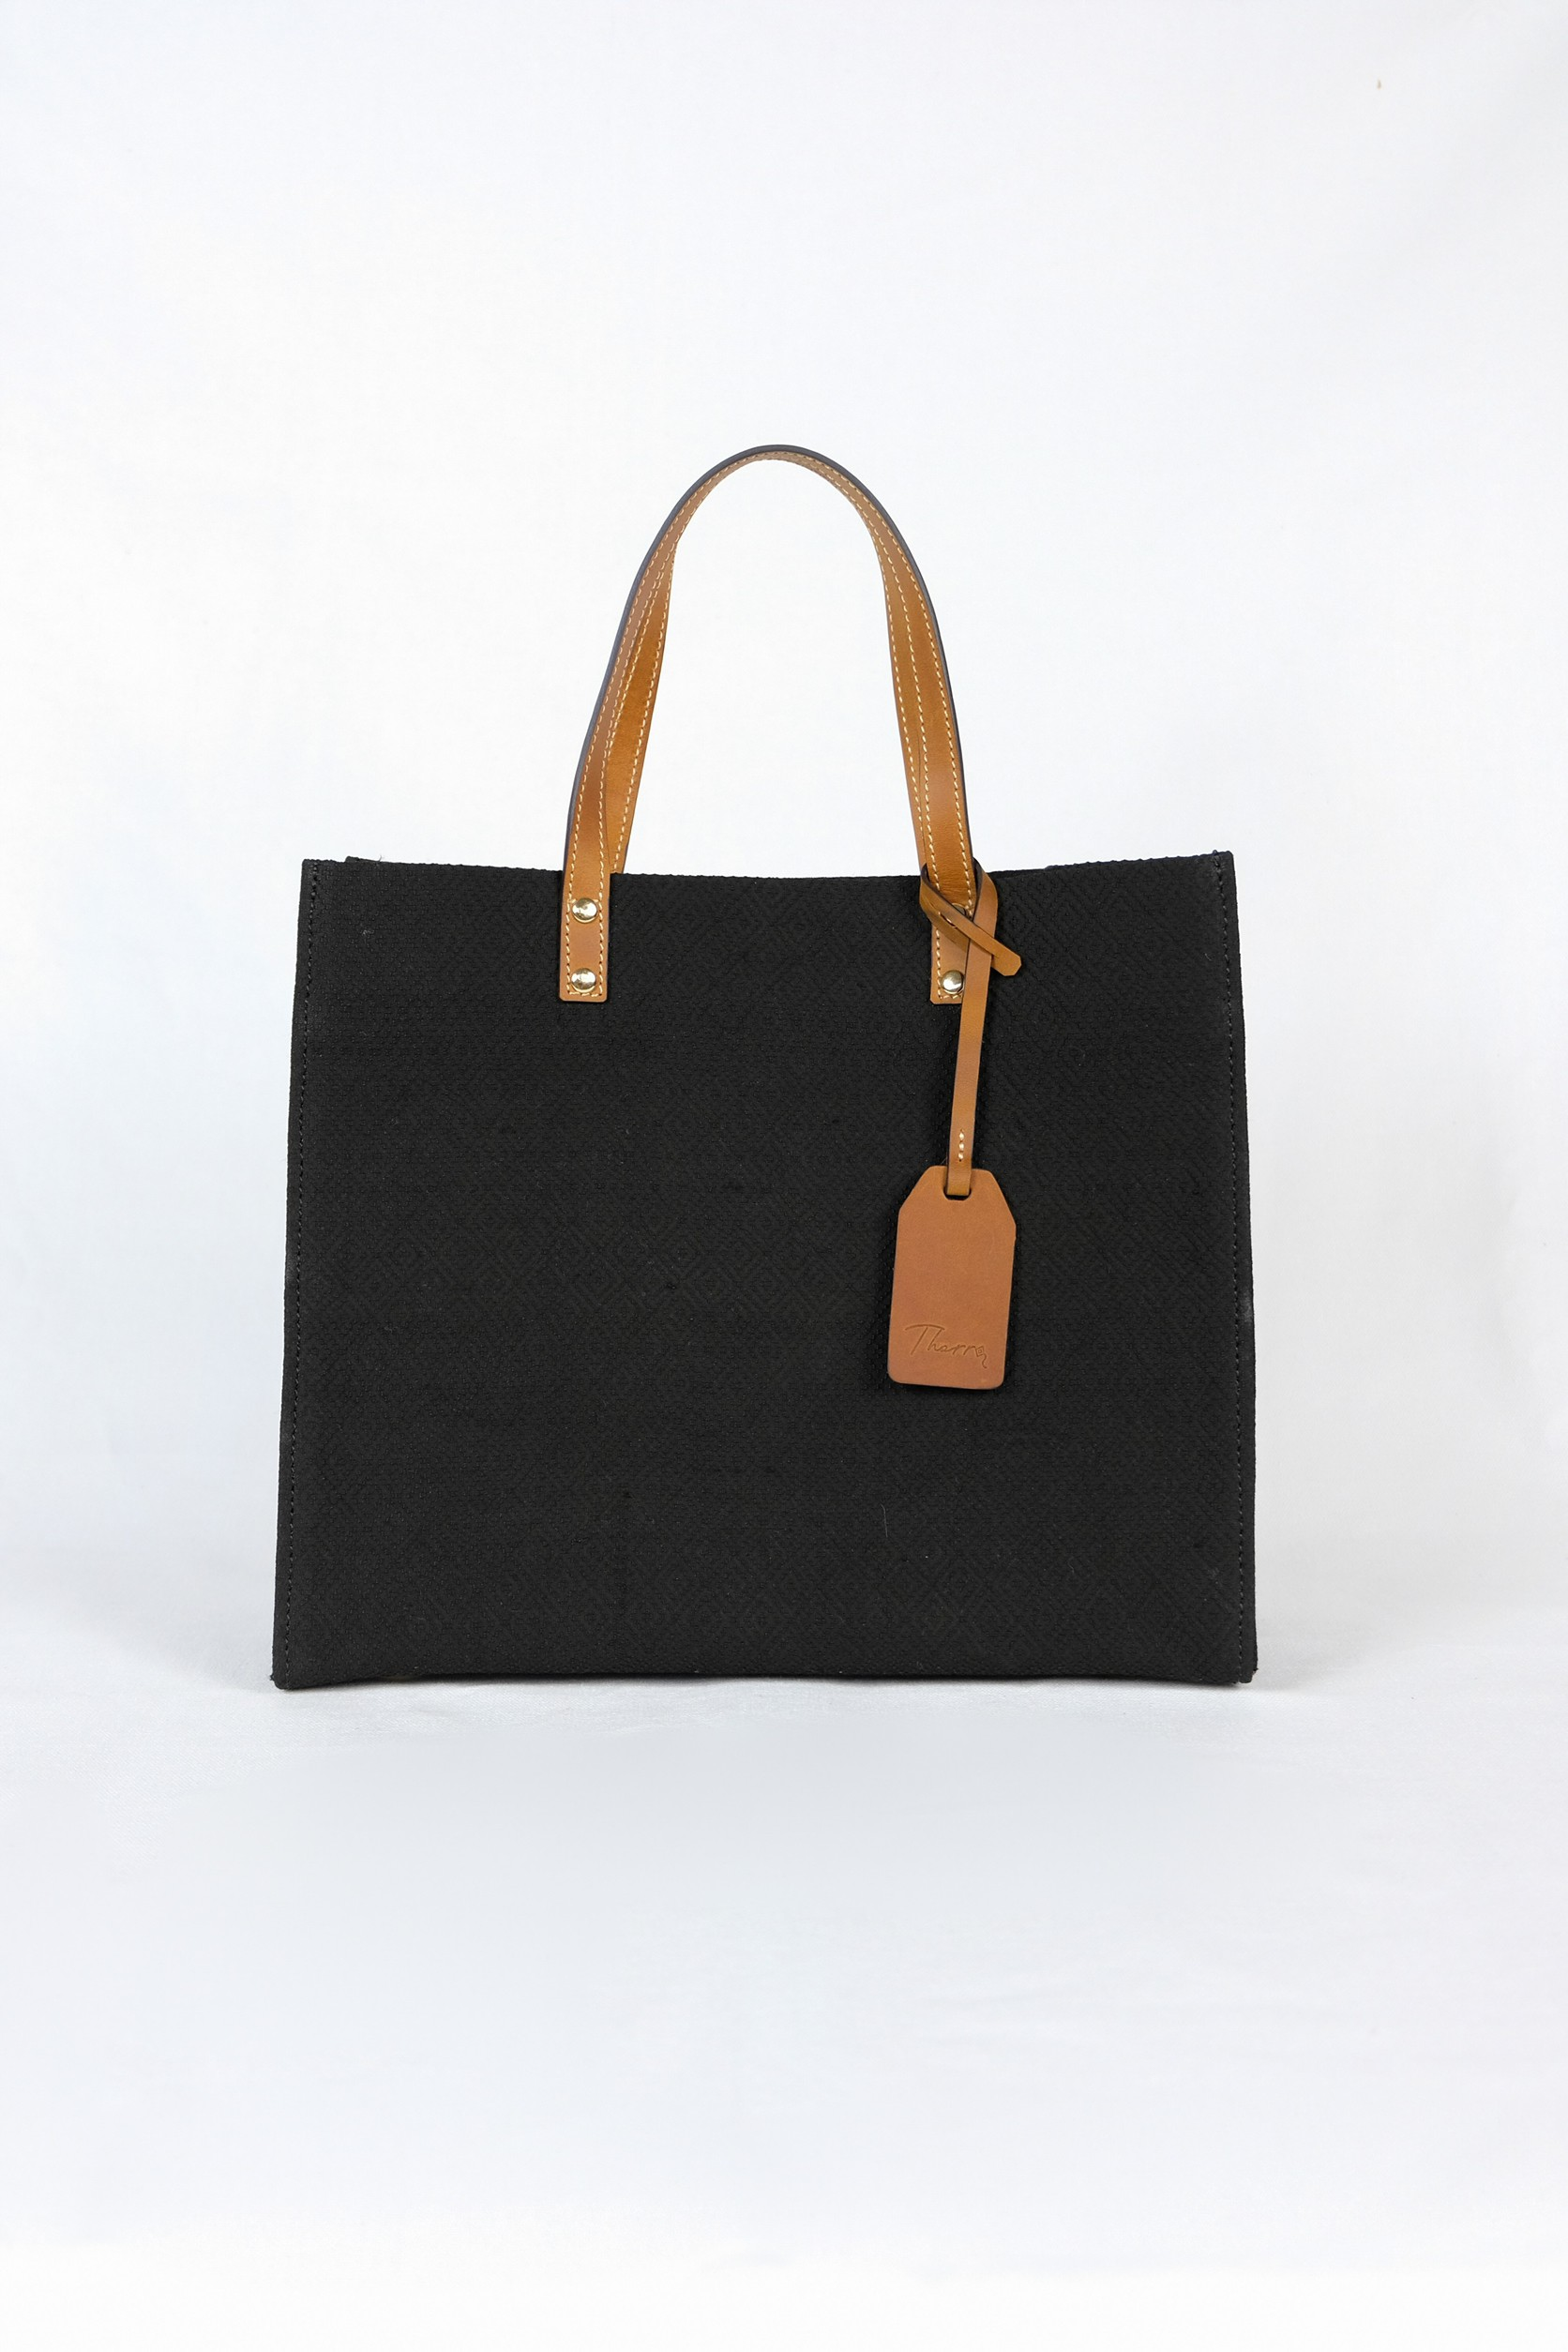 Lookkeaw bag limited